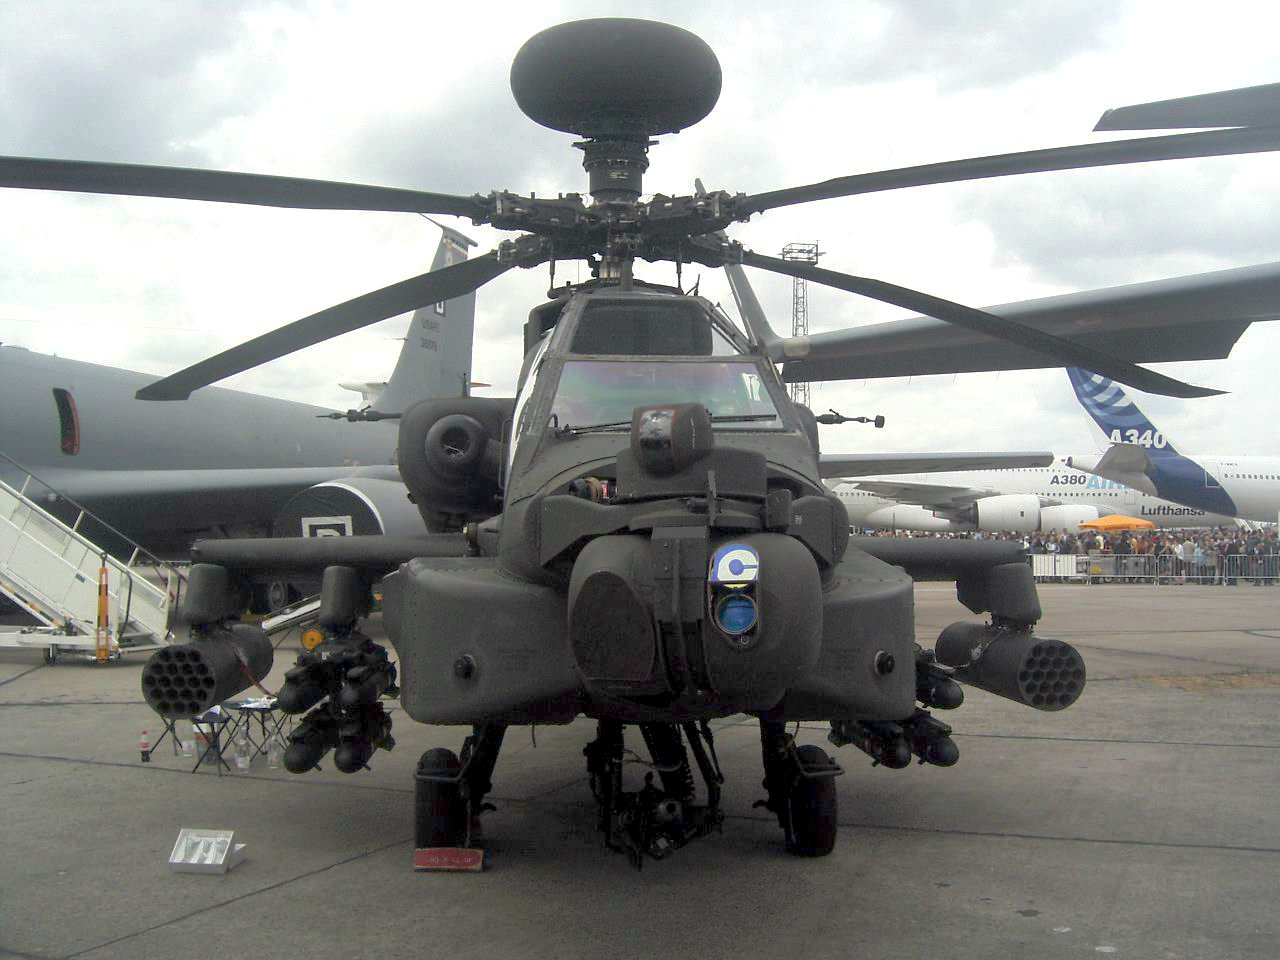 bell helicopter blueprint with File Apache Longbow Gesamtansicht on Oblivion Bubbleship additionally Bell ah 1w super cobra furthermore Imagenes Cutaway PARTE1 as well 4 together with Cutaway Ah 1z Viper Enters Production As Substantially New Aircraft.